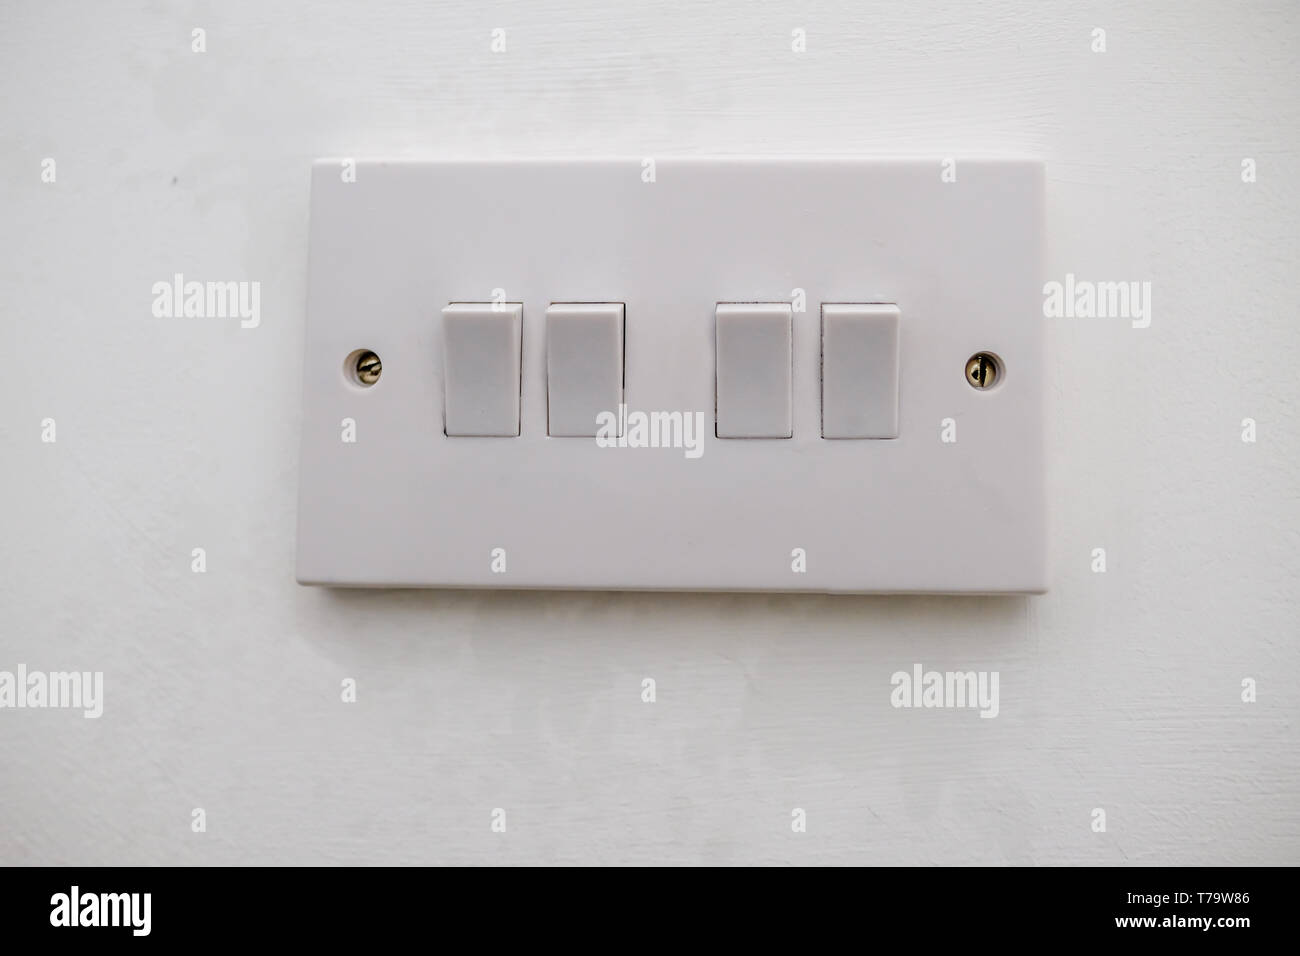 Four Way Switch Circuit